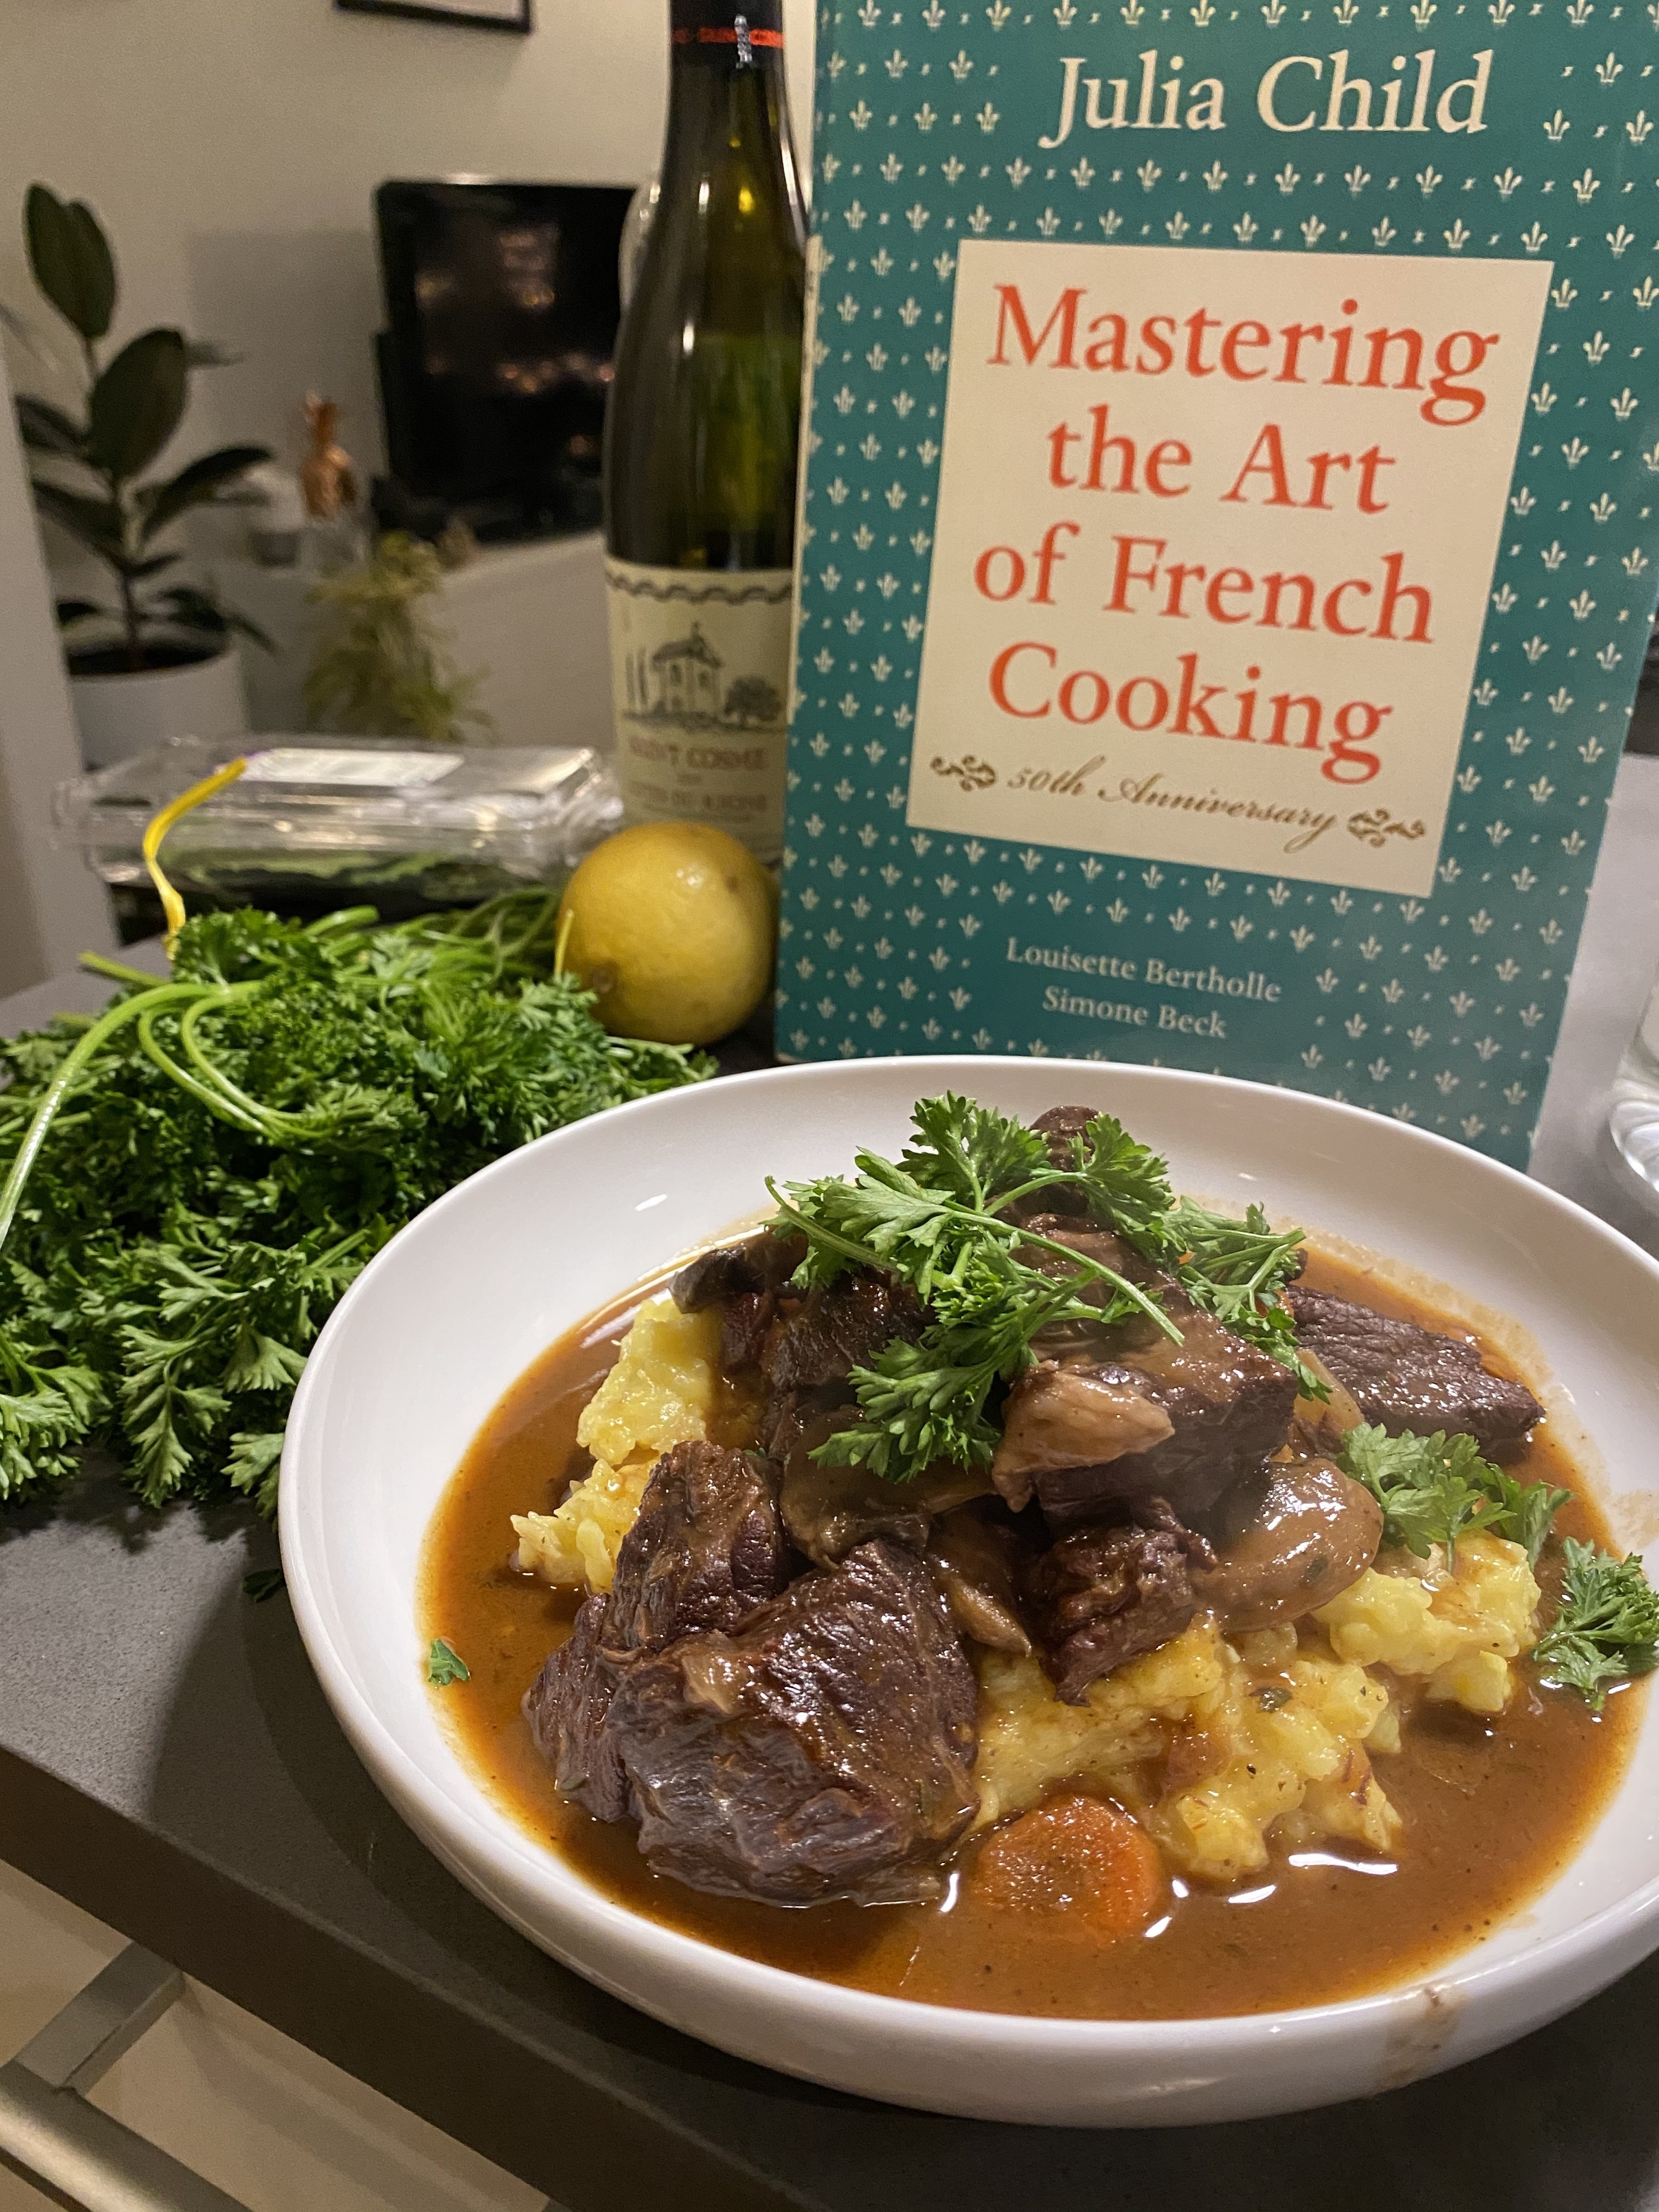 "A copy Julia Child's book ""Mastering the Art of French Cooking"" is seen behind a large plate of food"